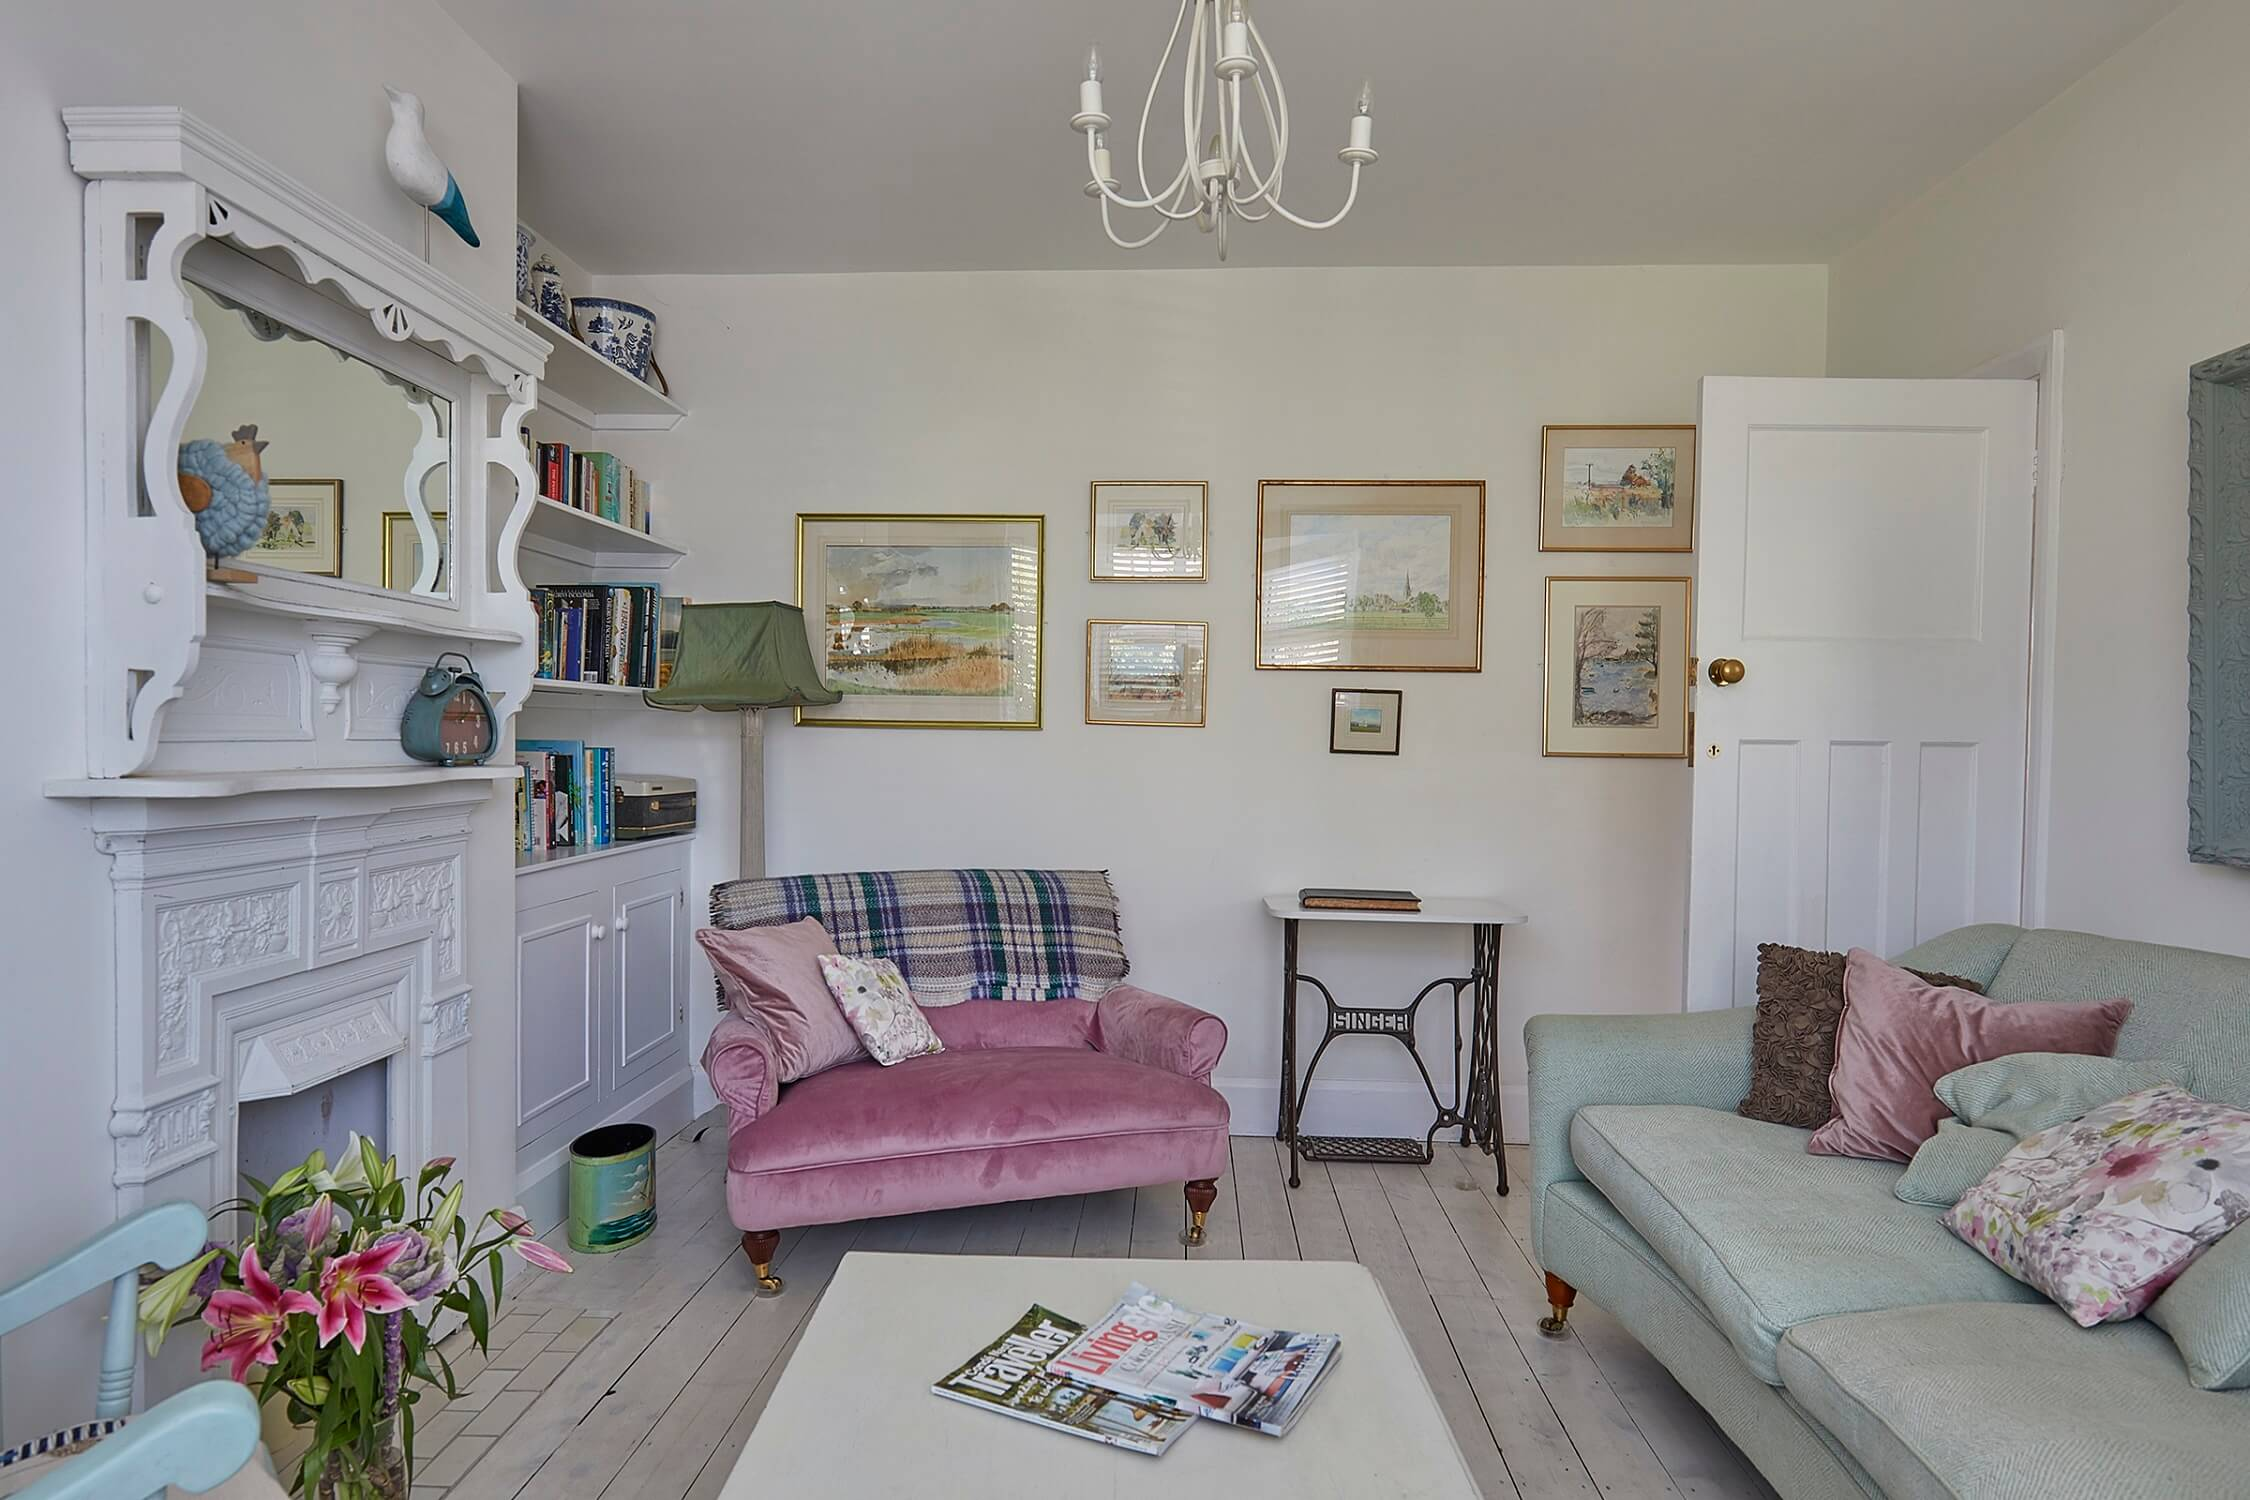 Front sitting room - Sussex holiday home - sleeps 8